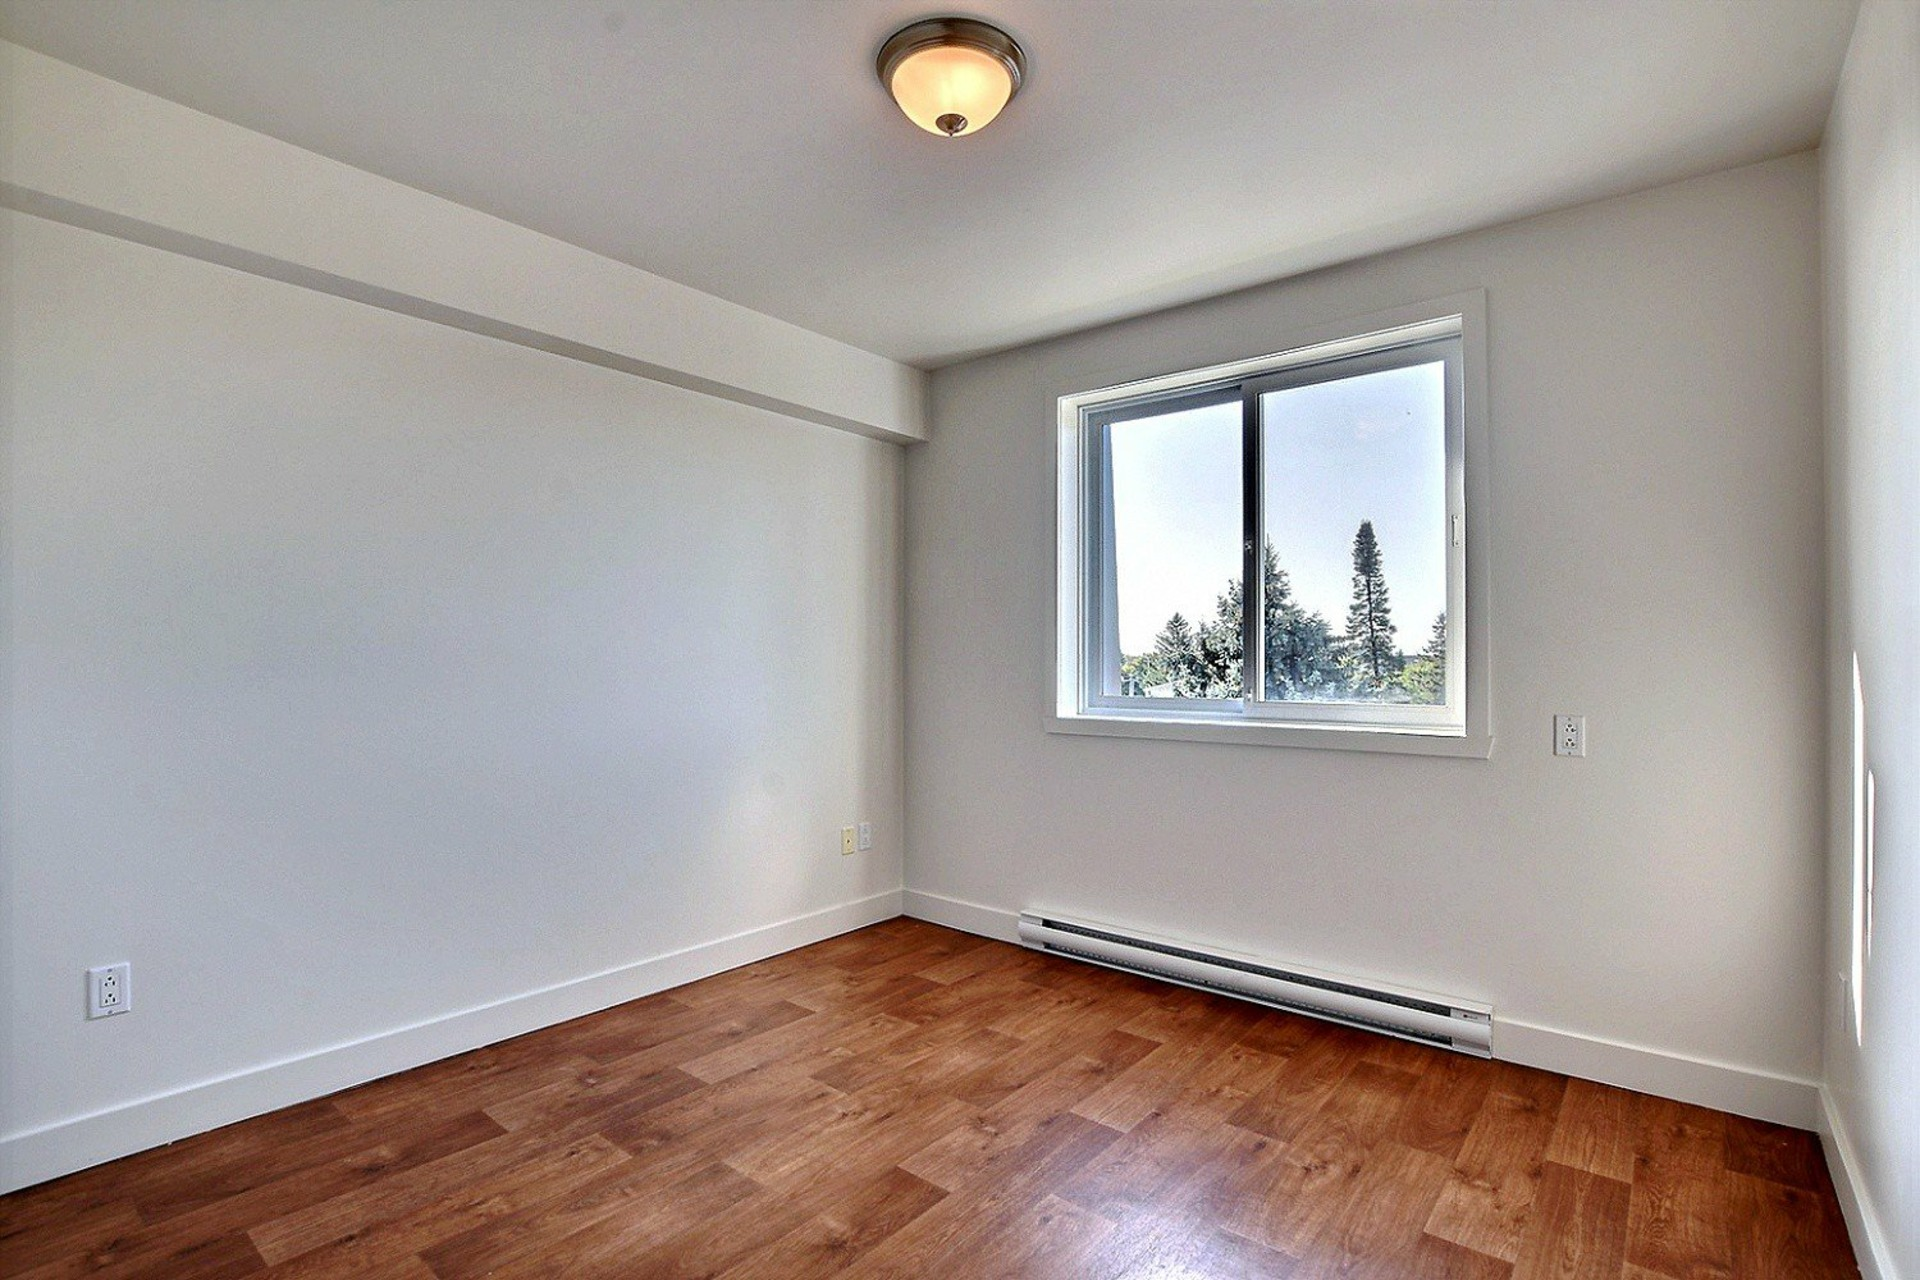 image 10 - Apartment For rent Brossard - 7 rooms